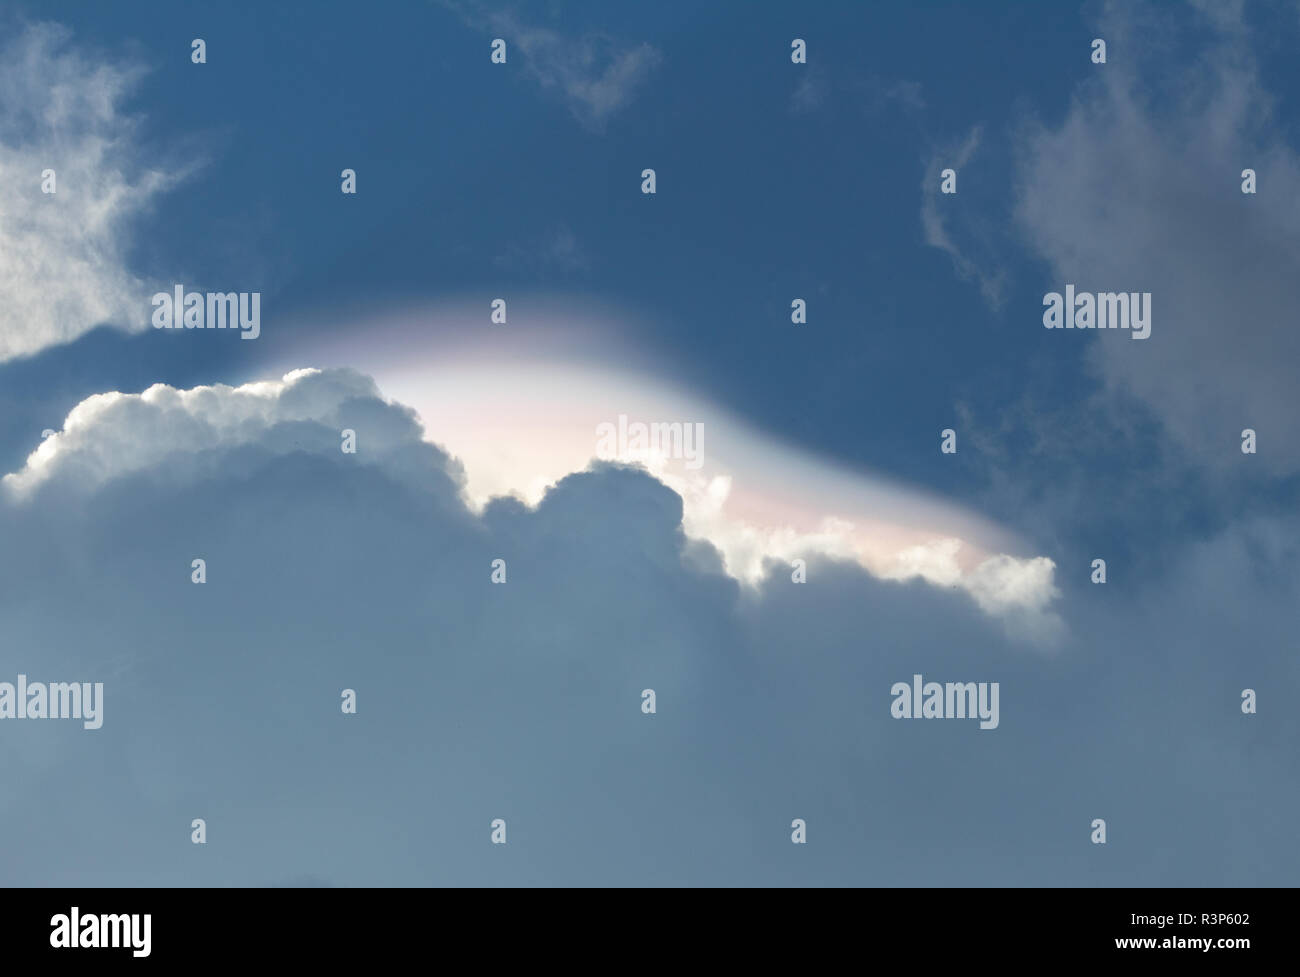 Rare prismatic cloud shelf anomaly - Stock Image